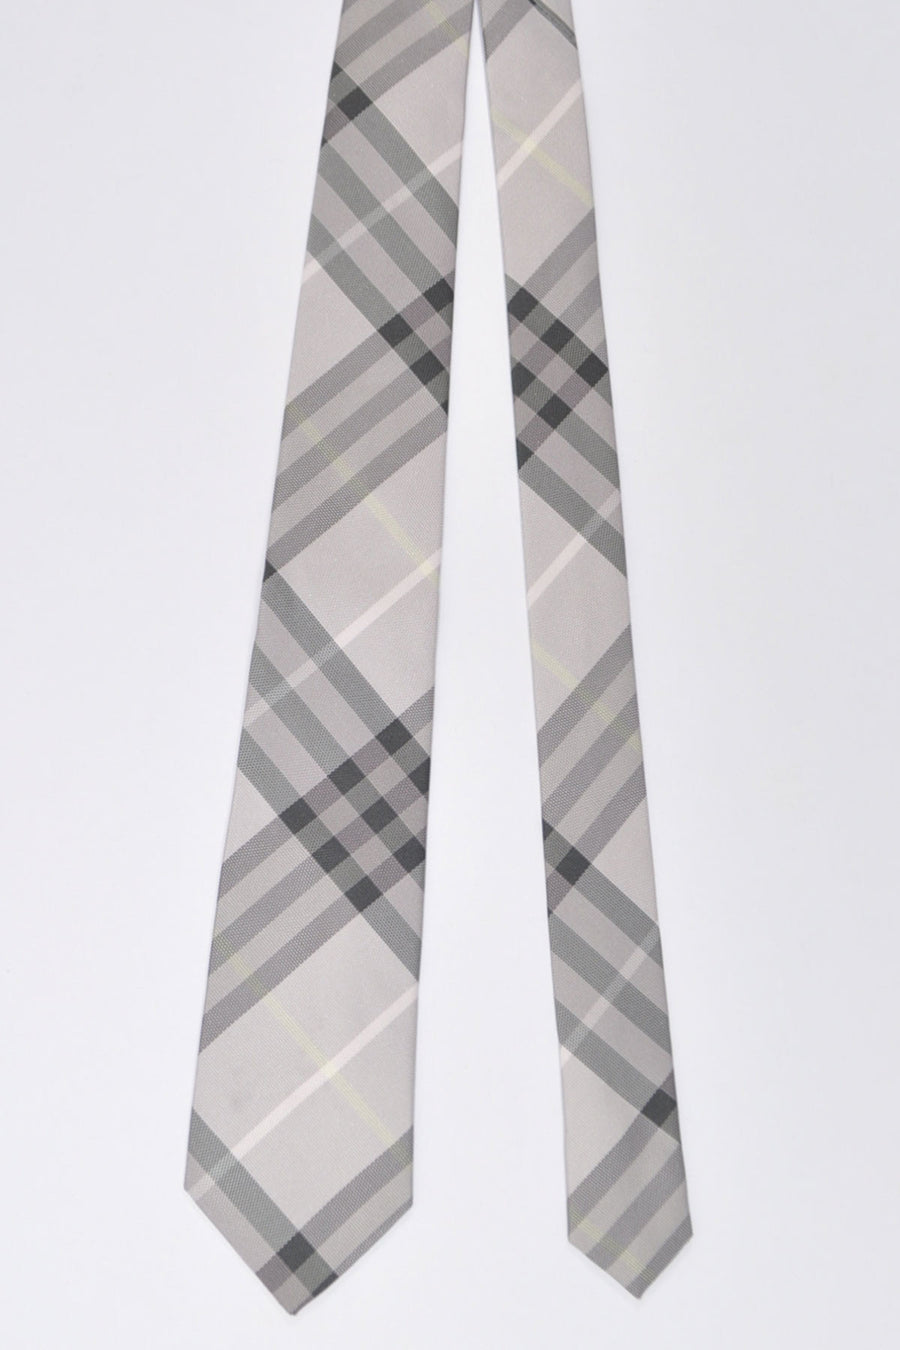 Burberry Tie Dust Pink Gray Check - Modern Cut